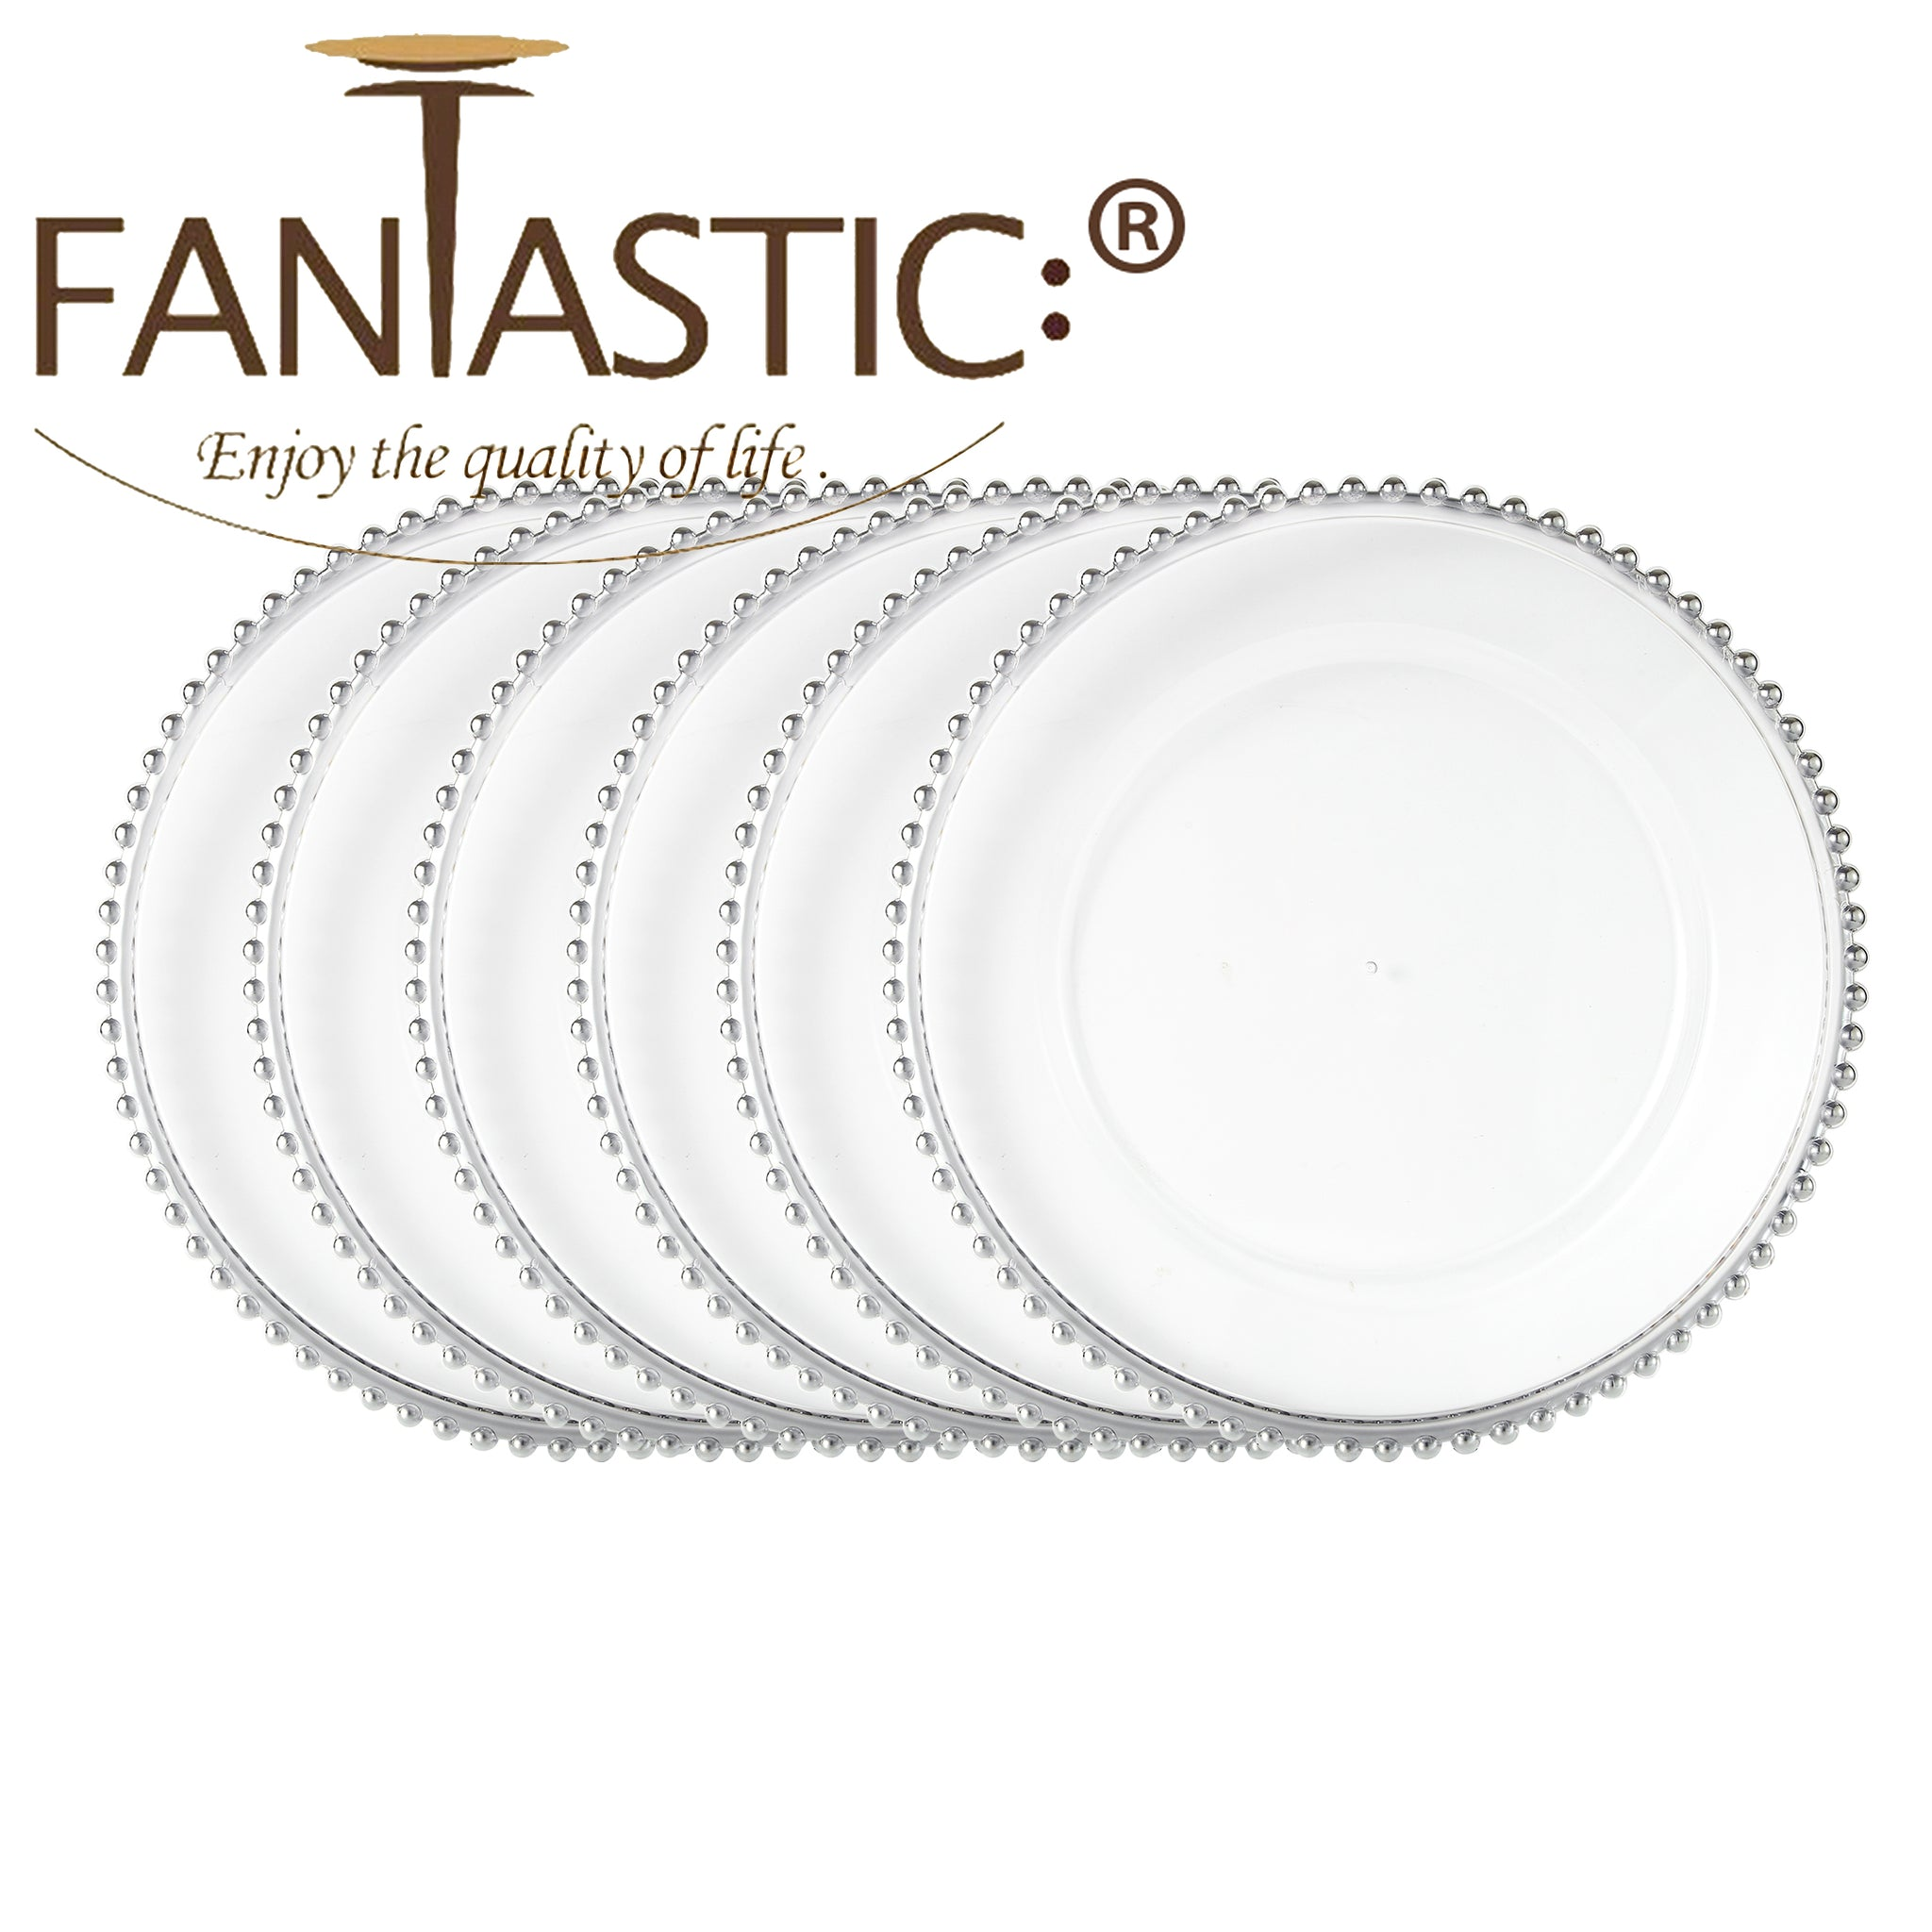 Fantastic 13 Inch Round Faux Glass Plastic Charger Plates Clear Fini Fantastic Import